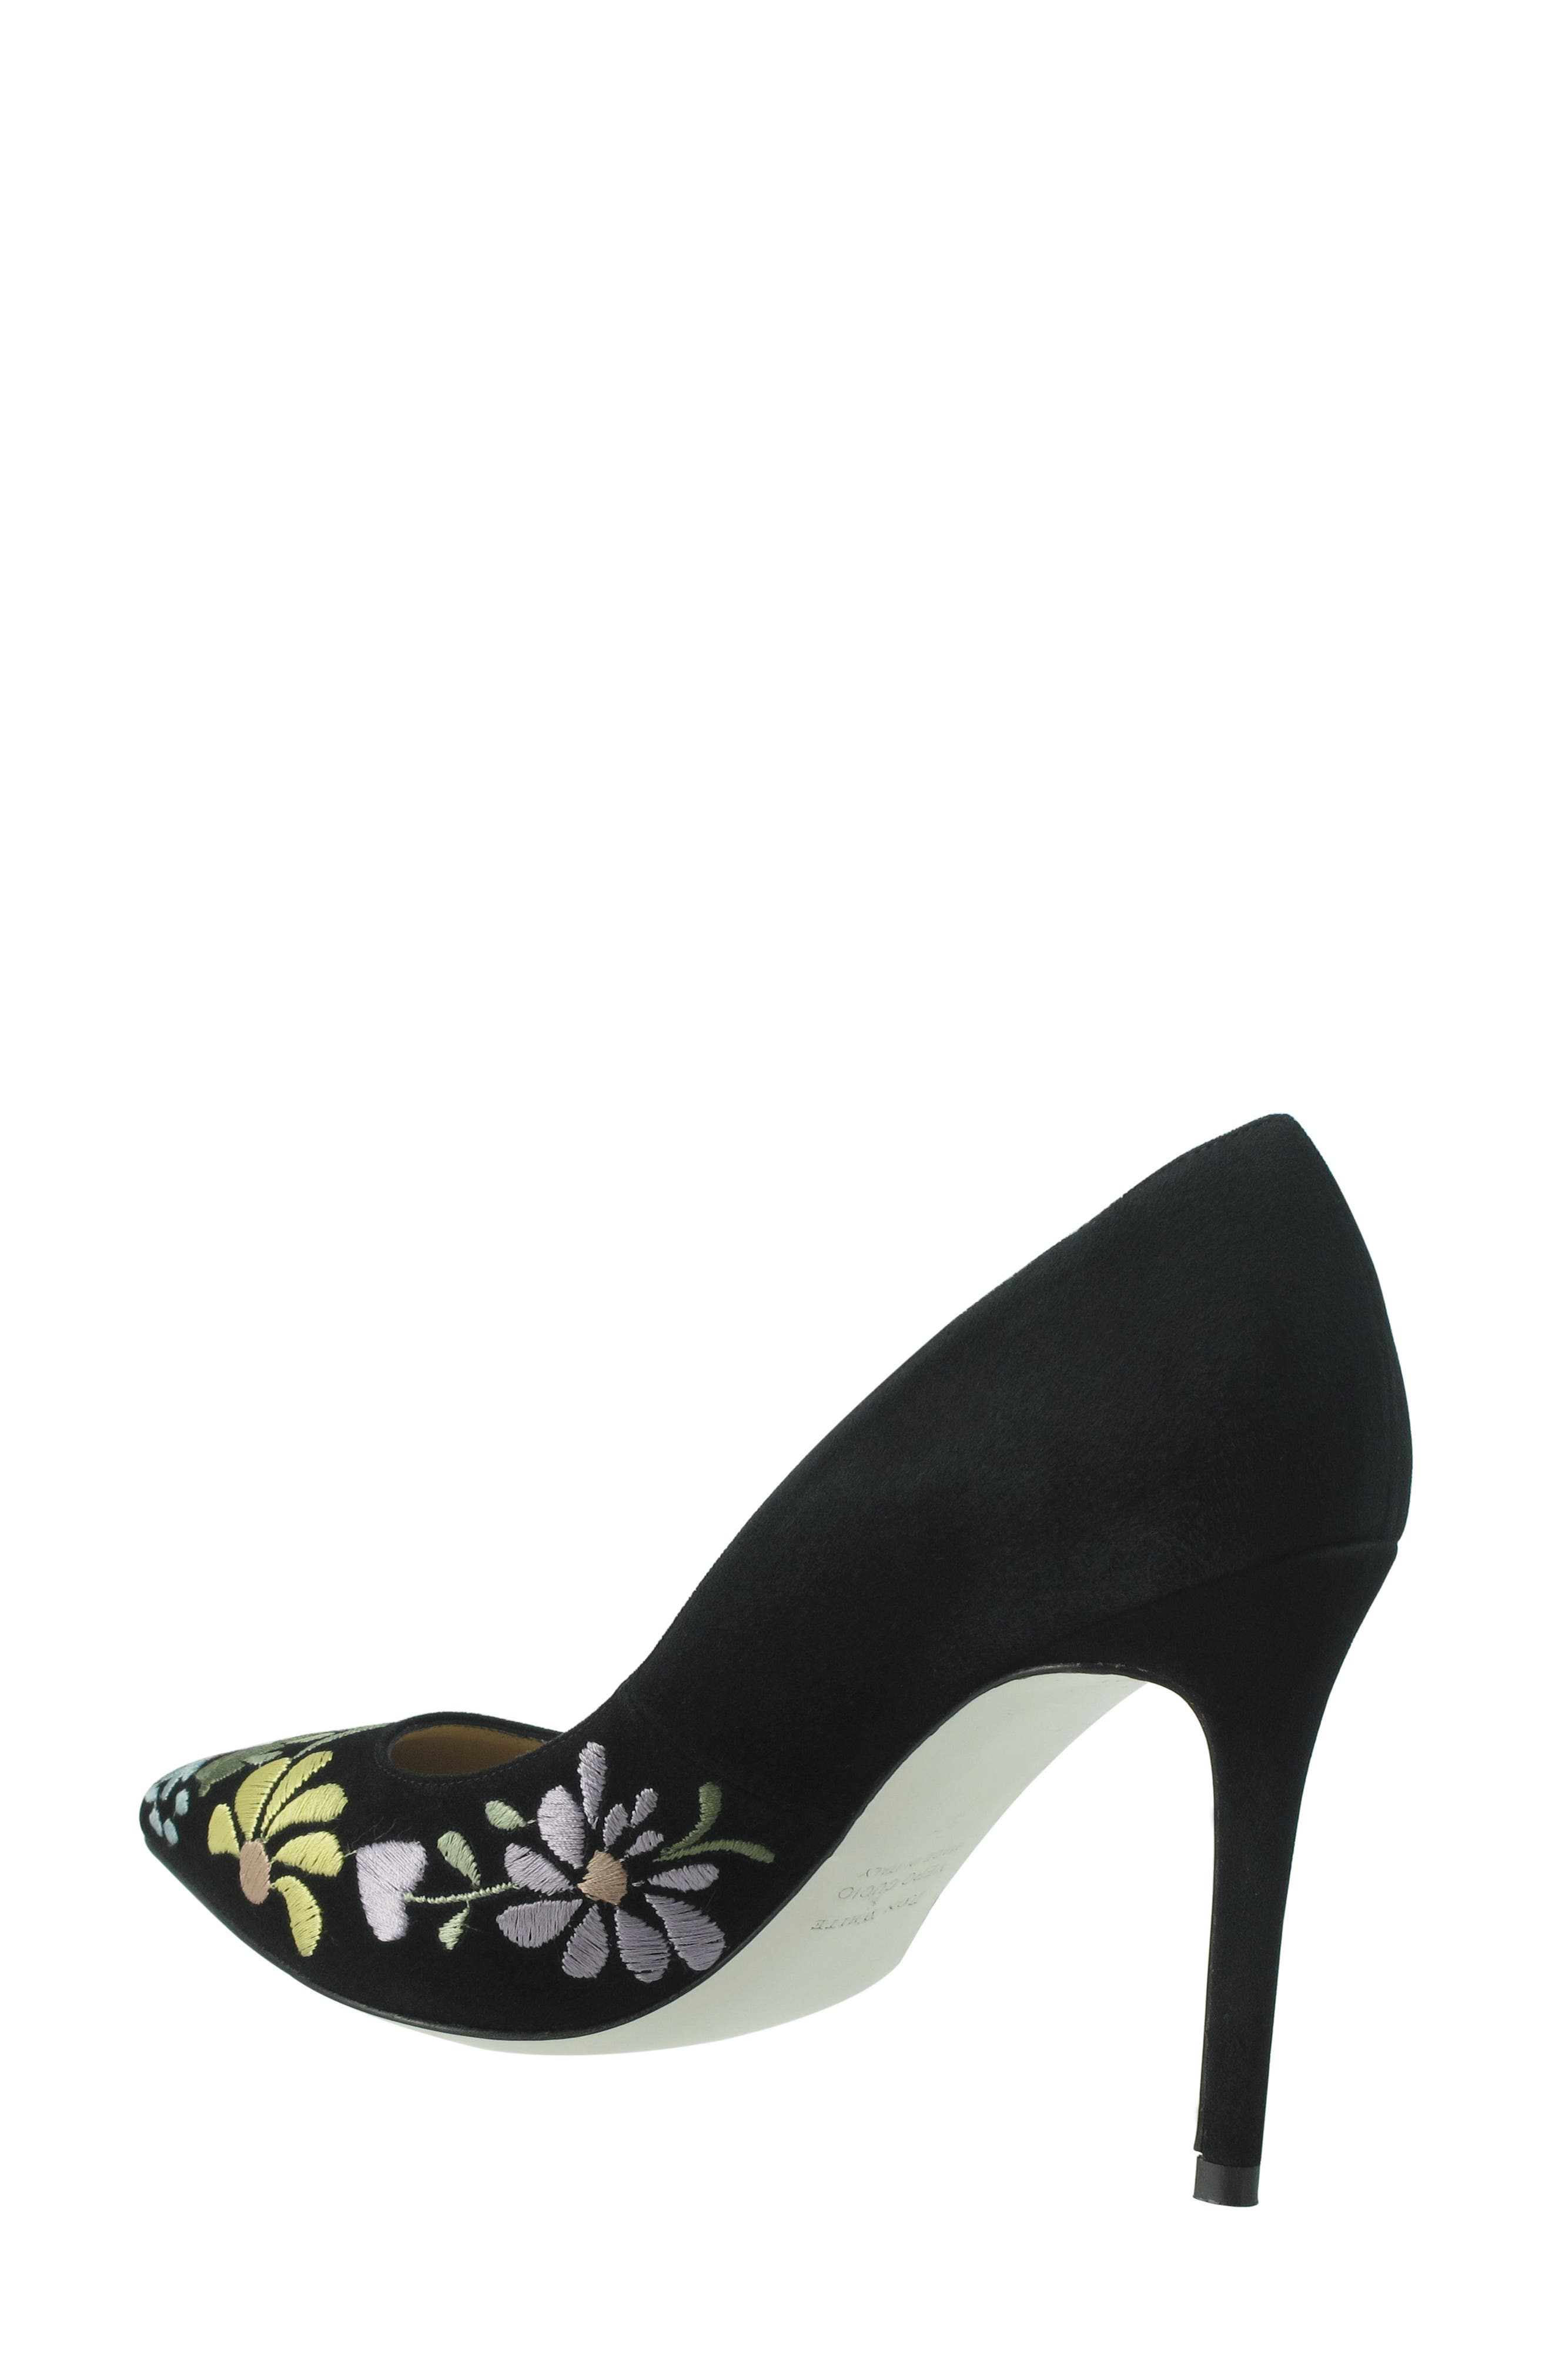 Shana Flower Embroidered Pump,                             Alternate thumbnail 2, color,                             Onyx Multi Suede